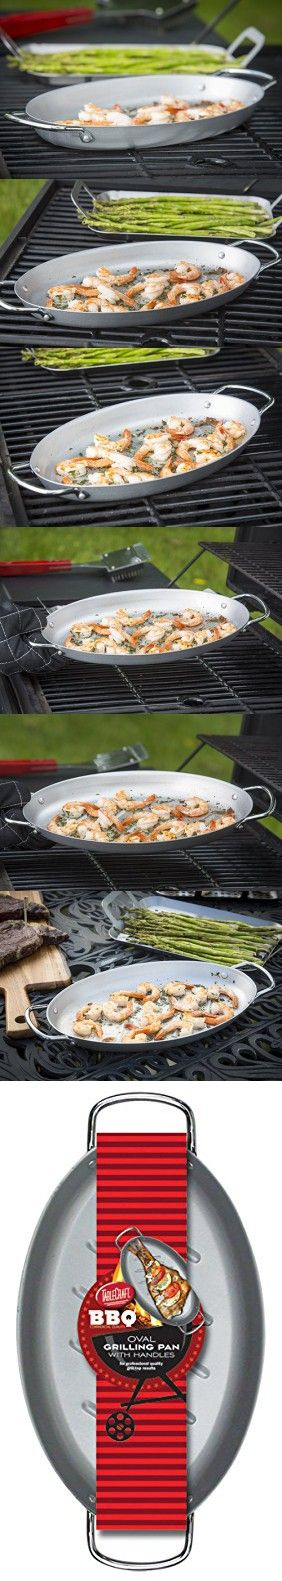 TableCraft BBQ158M BBQ Oval Roasting Pan, Coated Steel, 15-Inch by 7-Inch